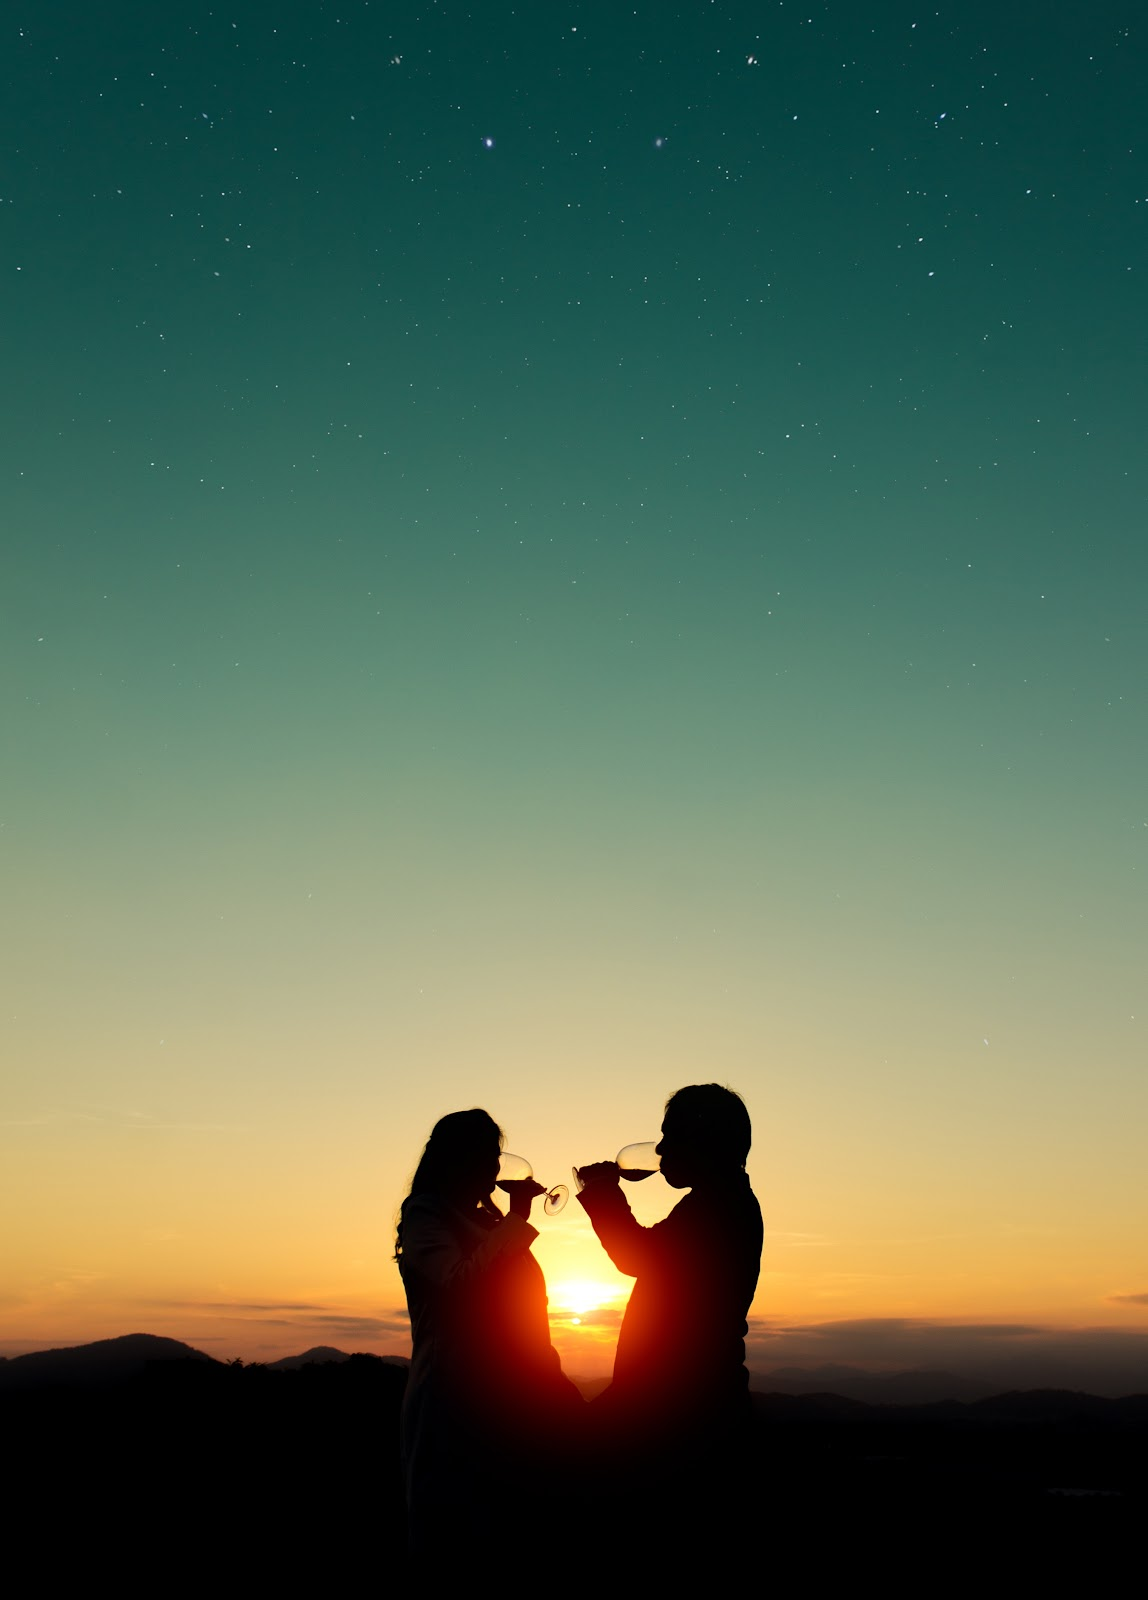 two people drinking wine in the sunset